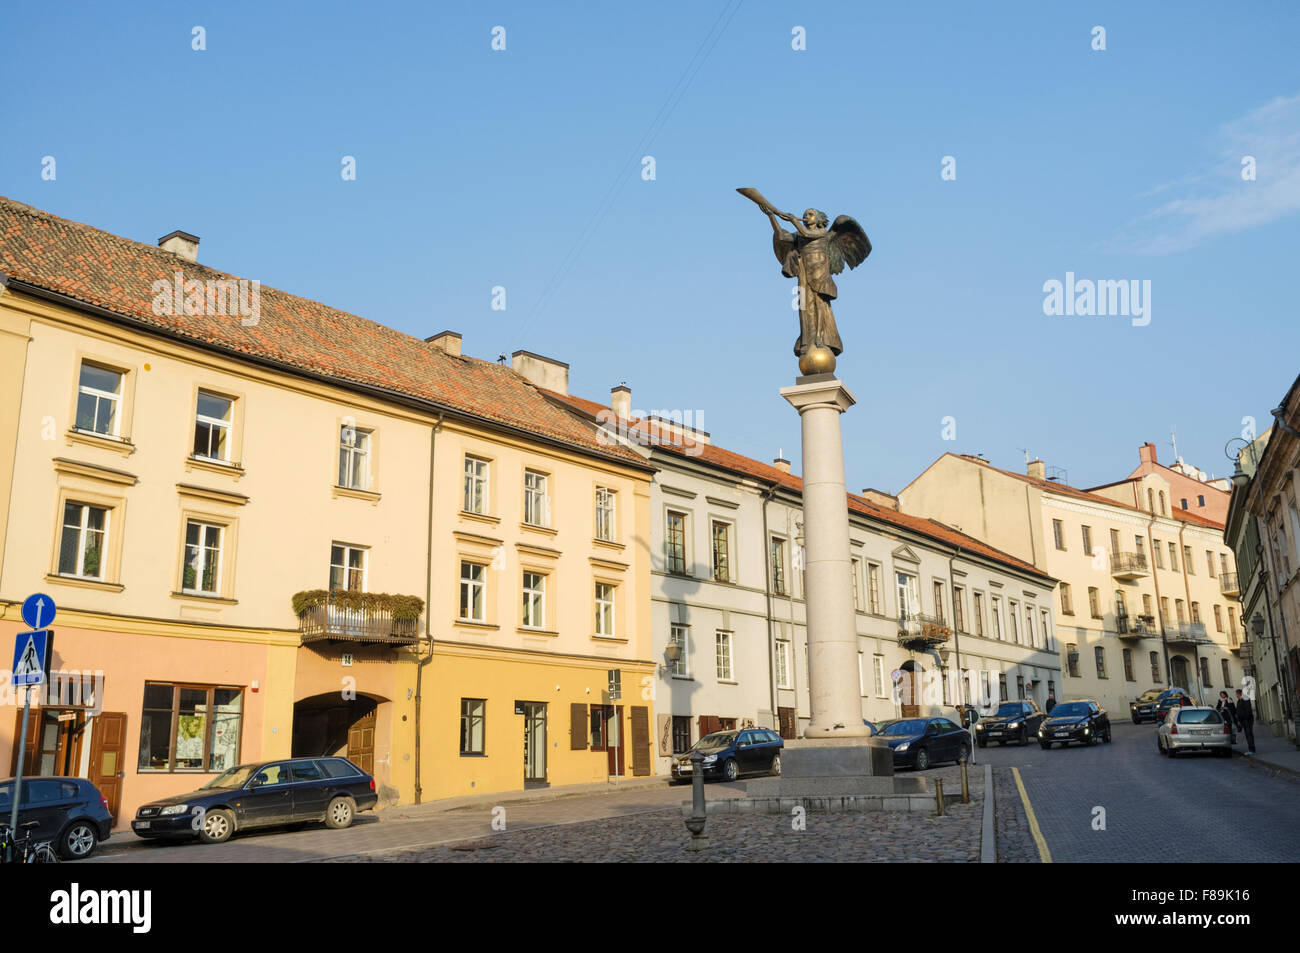 Angel of Uzupis monument in the self-declared independent republic at Uzupis bohemian district in Vilnius, Lithuania - Stock Image